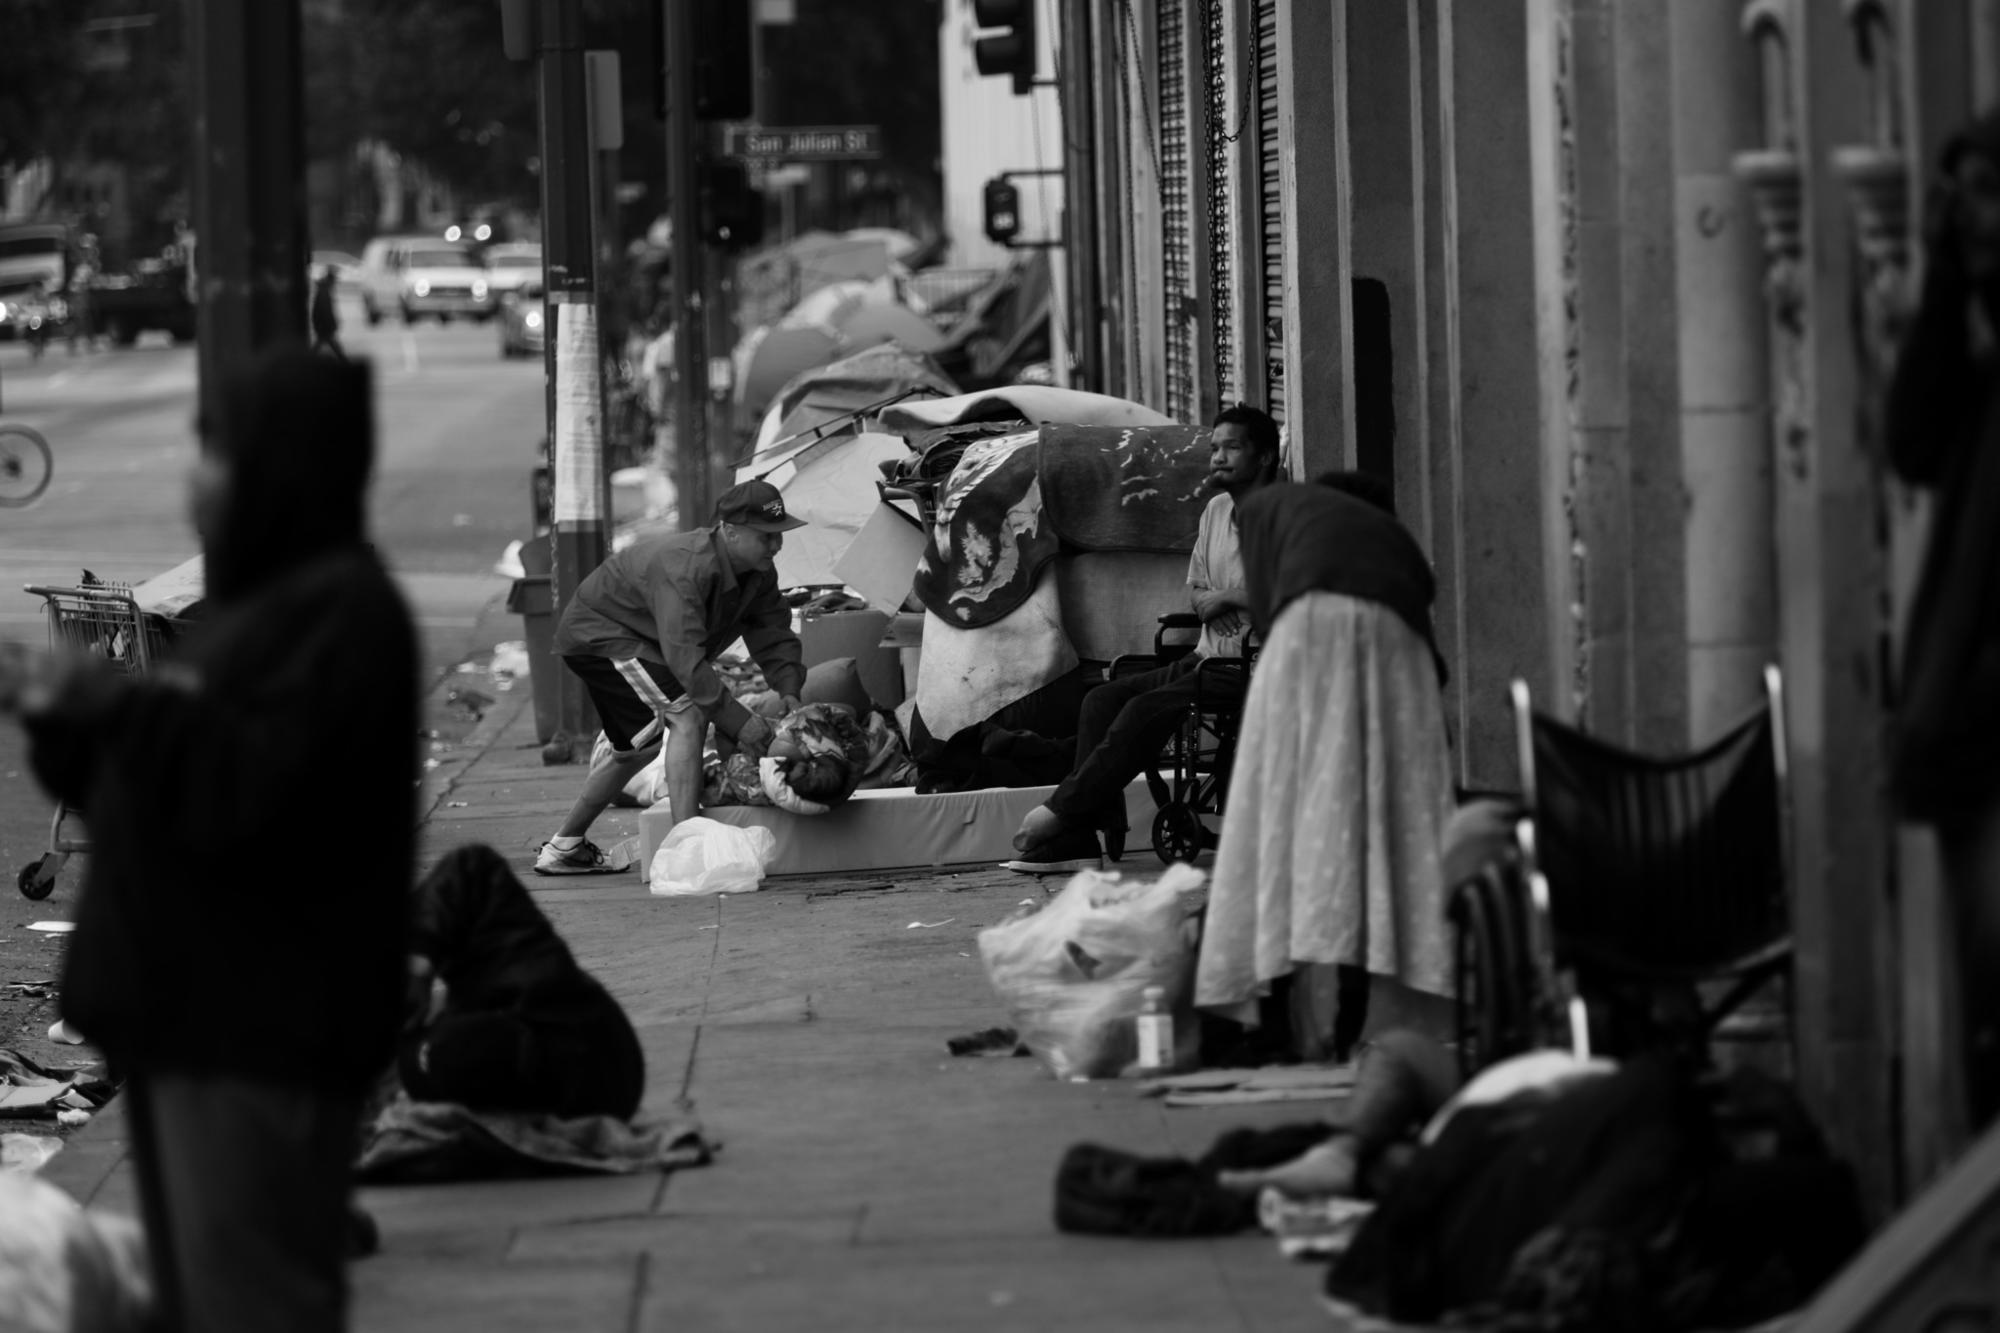 A man rolls up his bed on Skid Row.